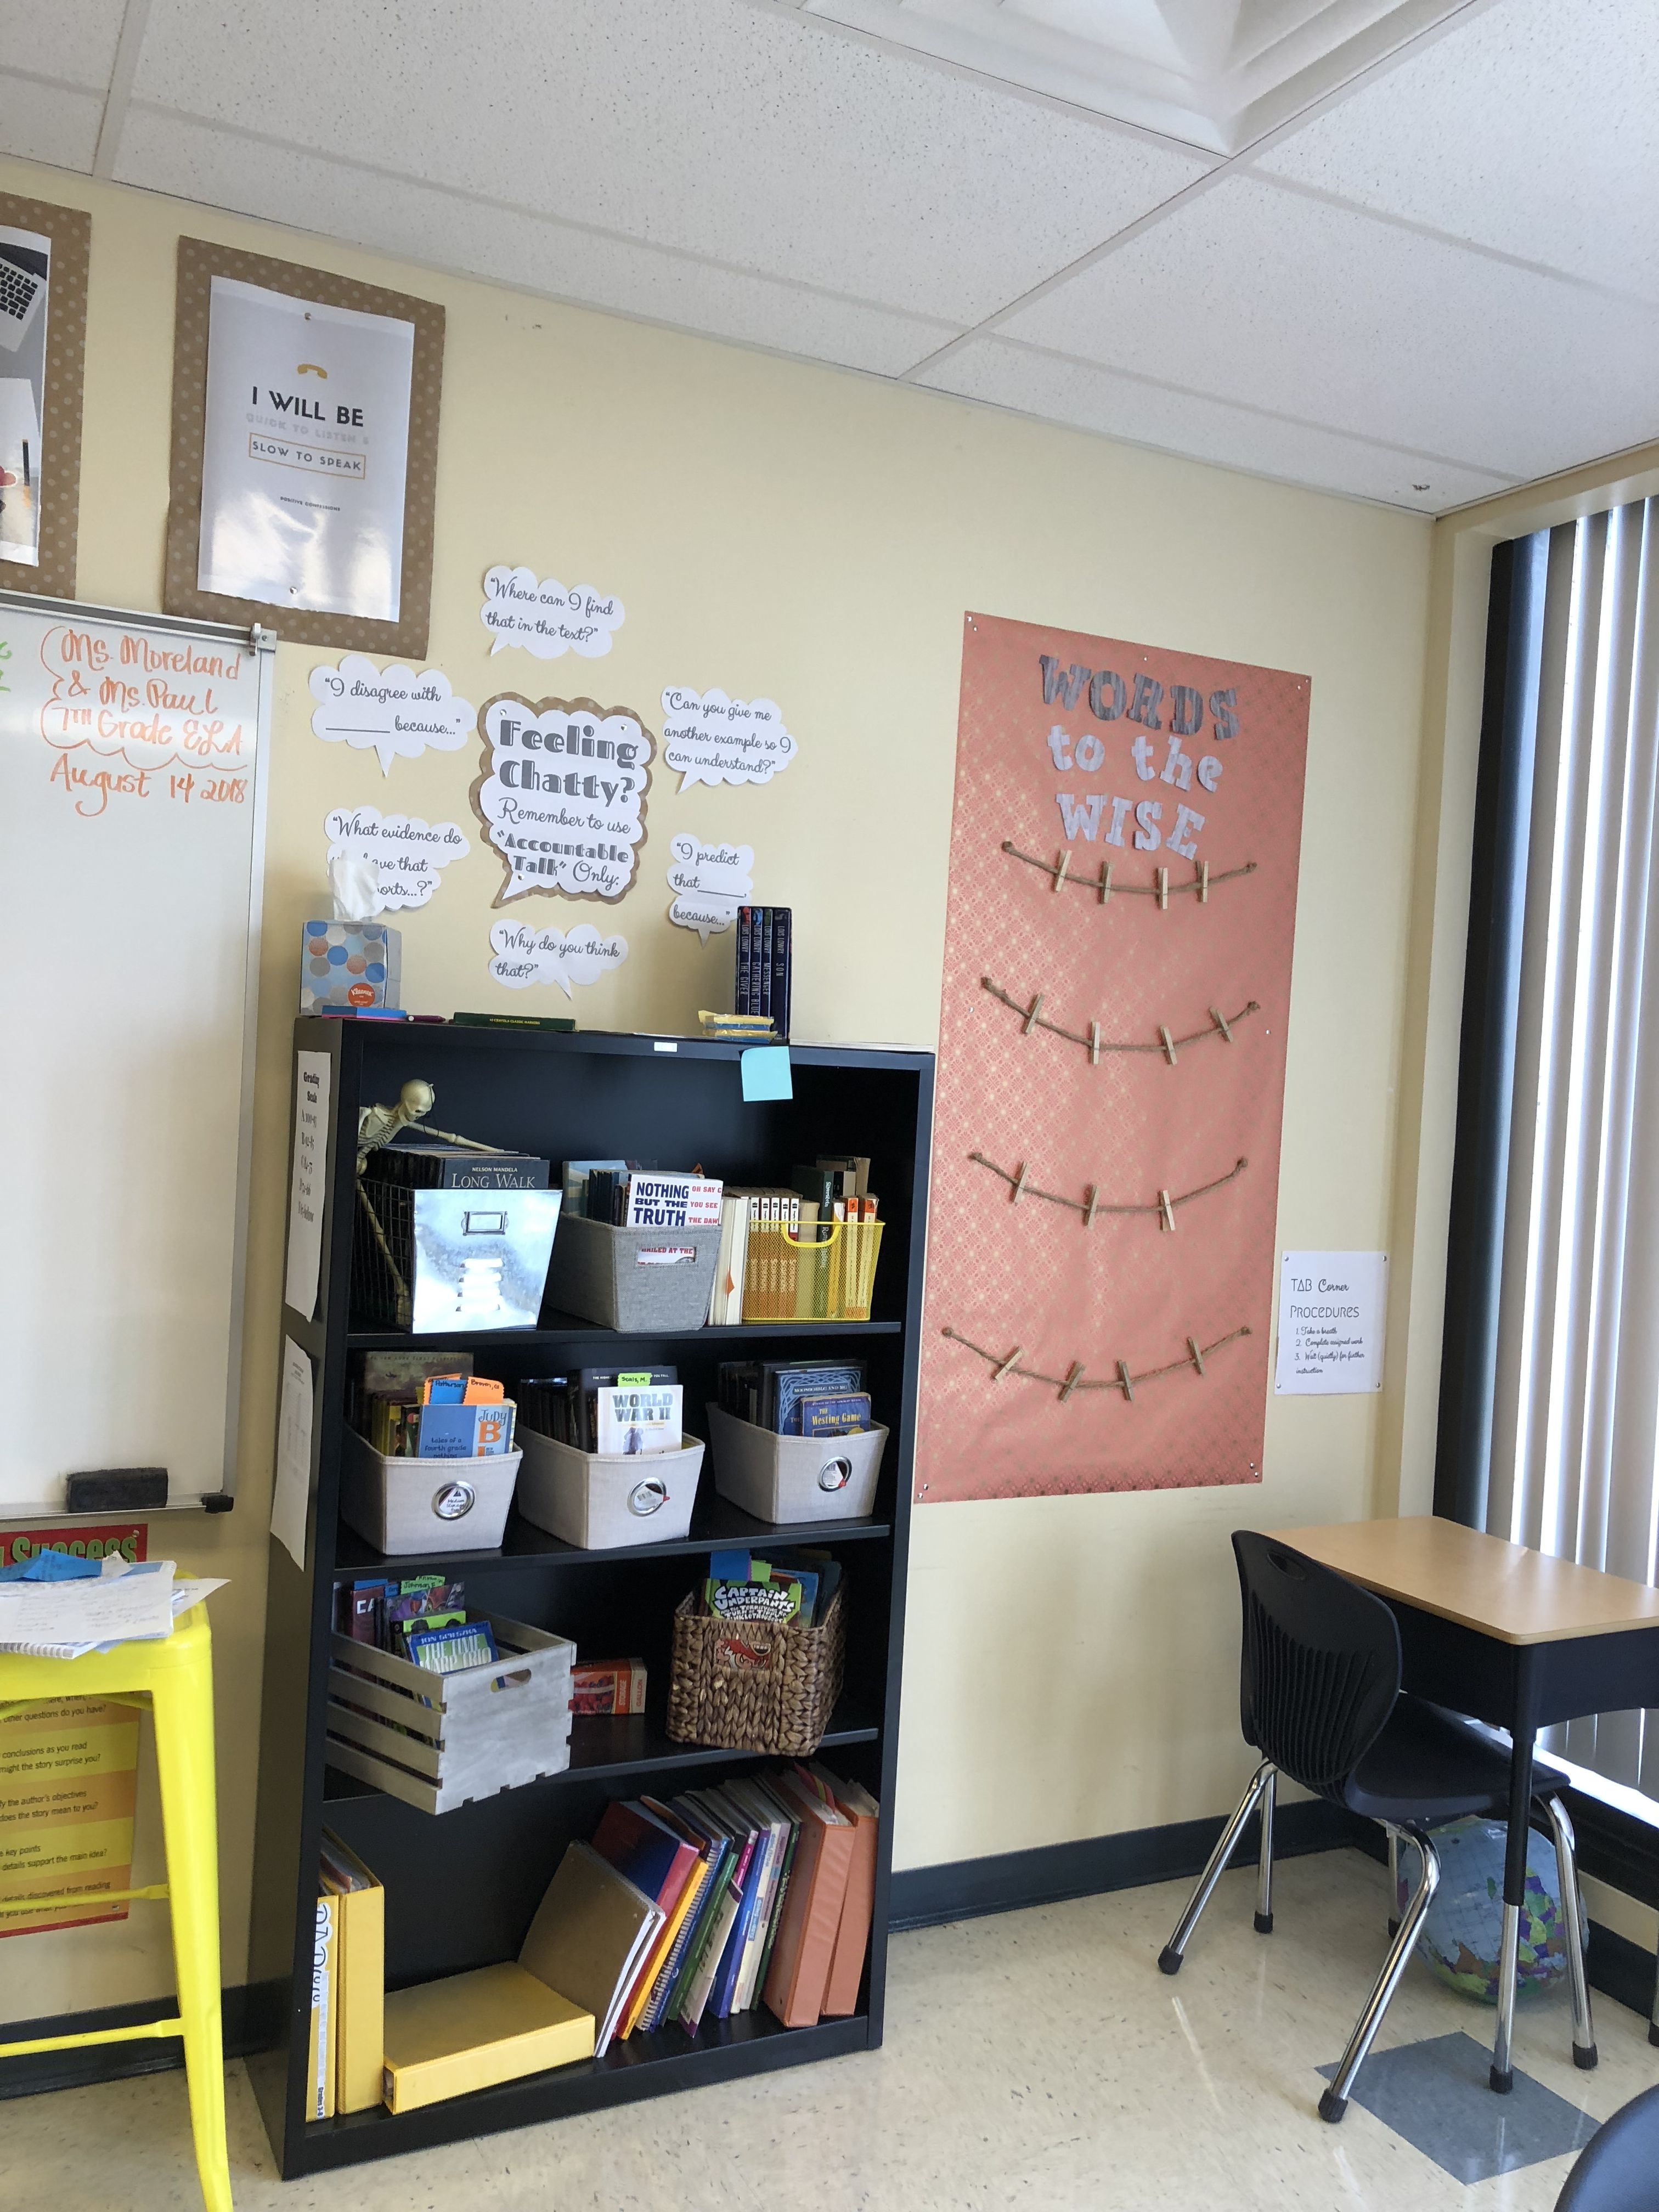 Pin By Chelsae Moreland On Classroom Ideas